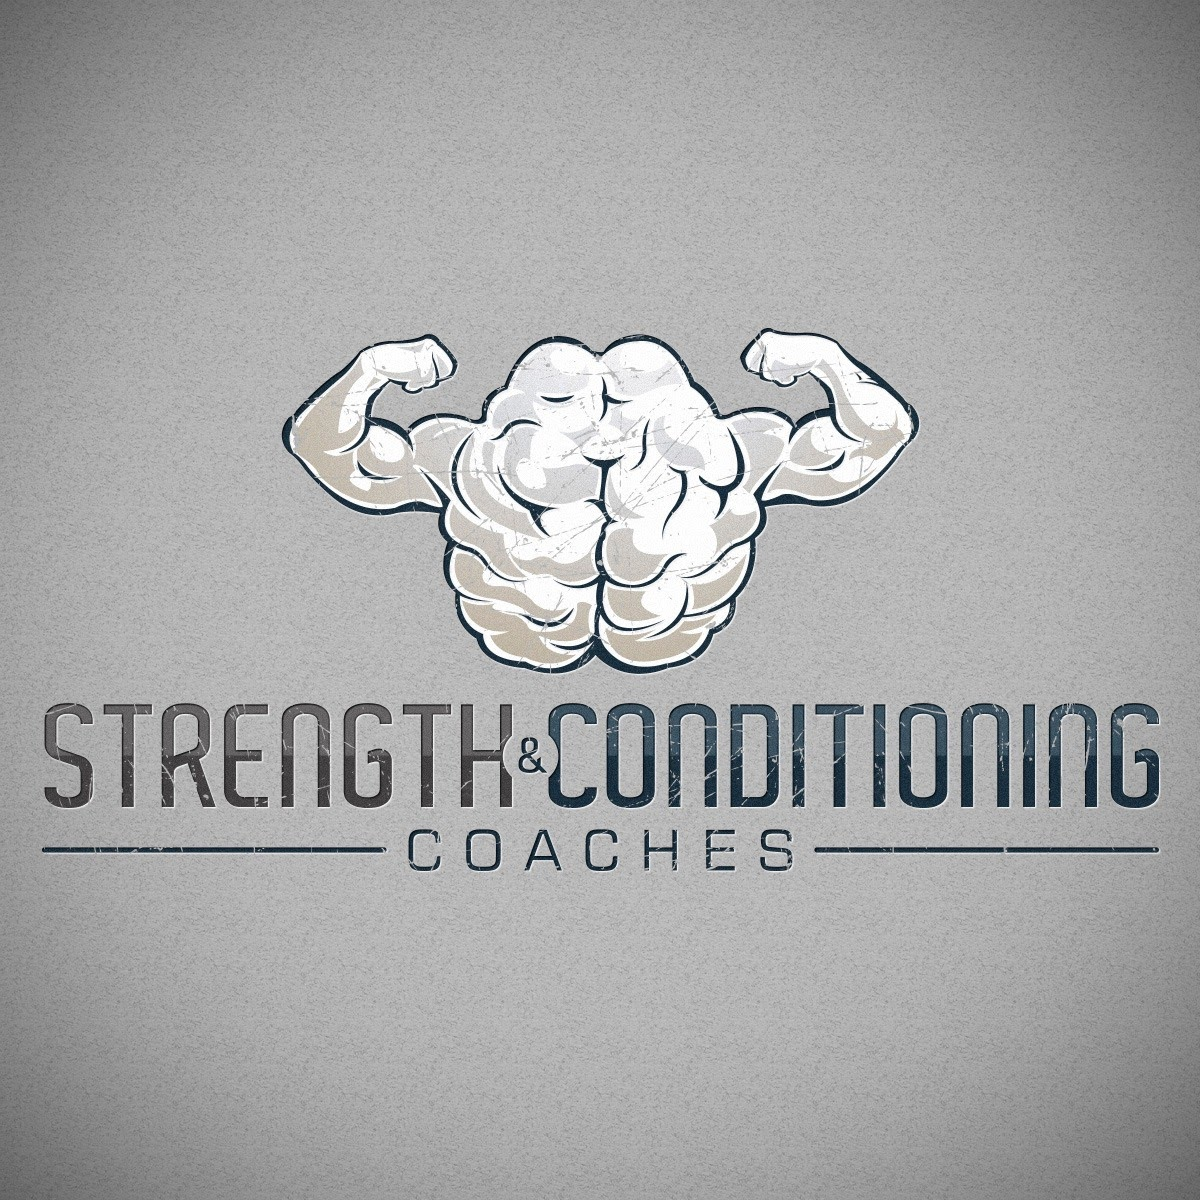 strength and conditioning coaches logo design by crike99